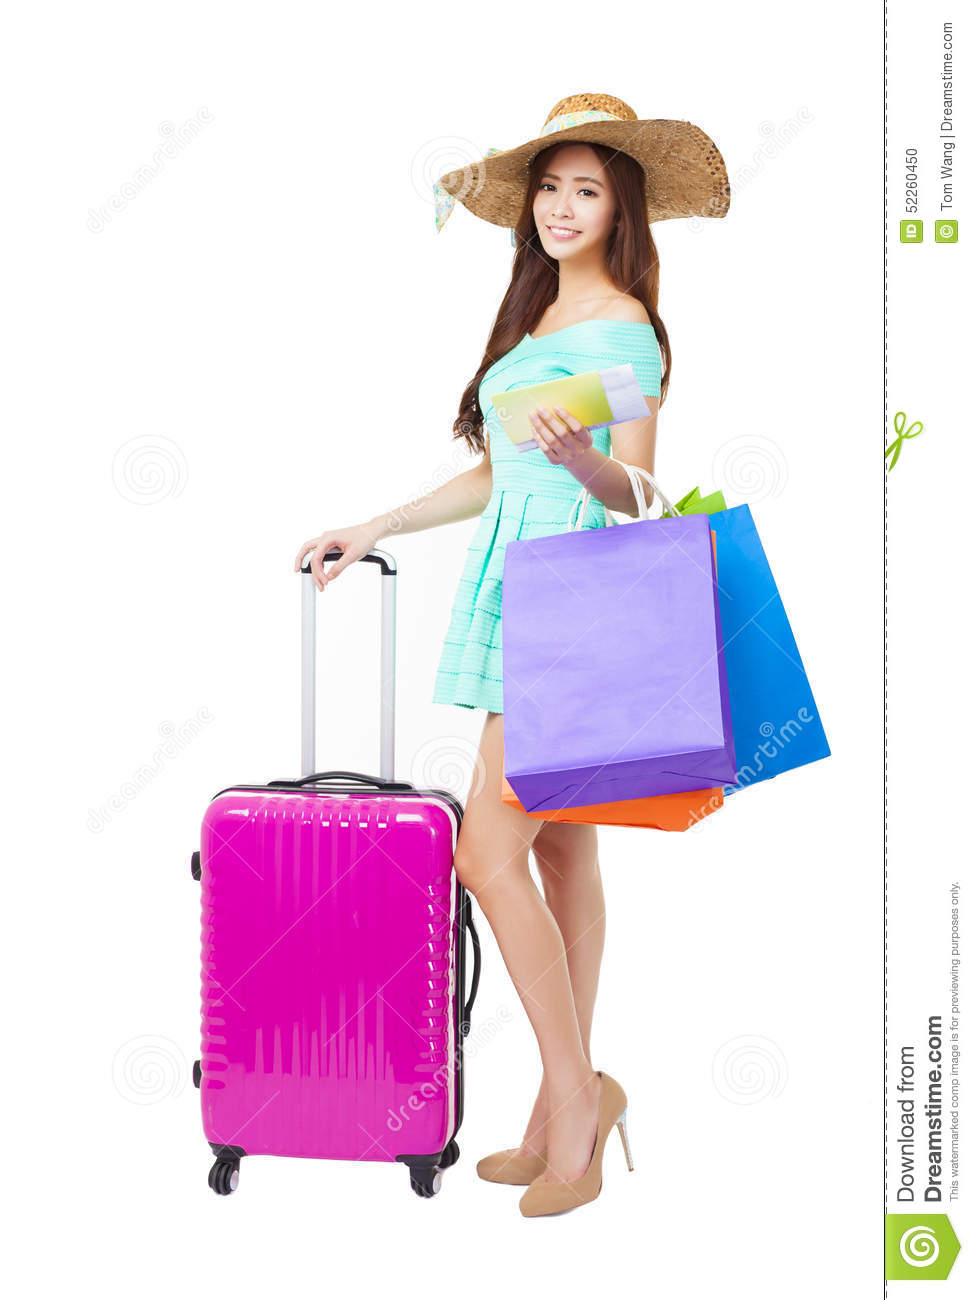 Luxury Woman Holding Money Shopping Bags Stock Photo - Image 22502034